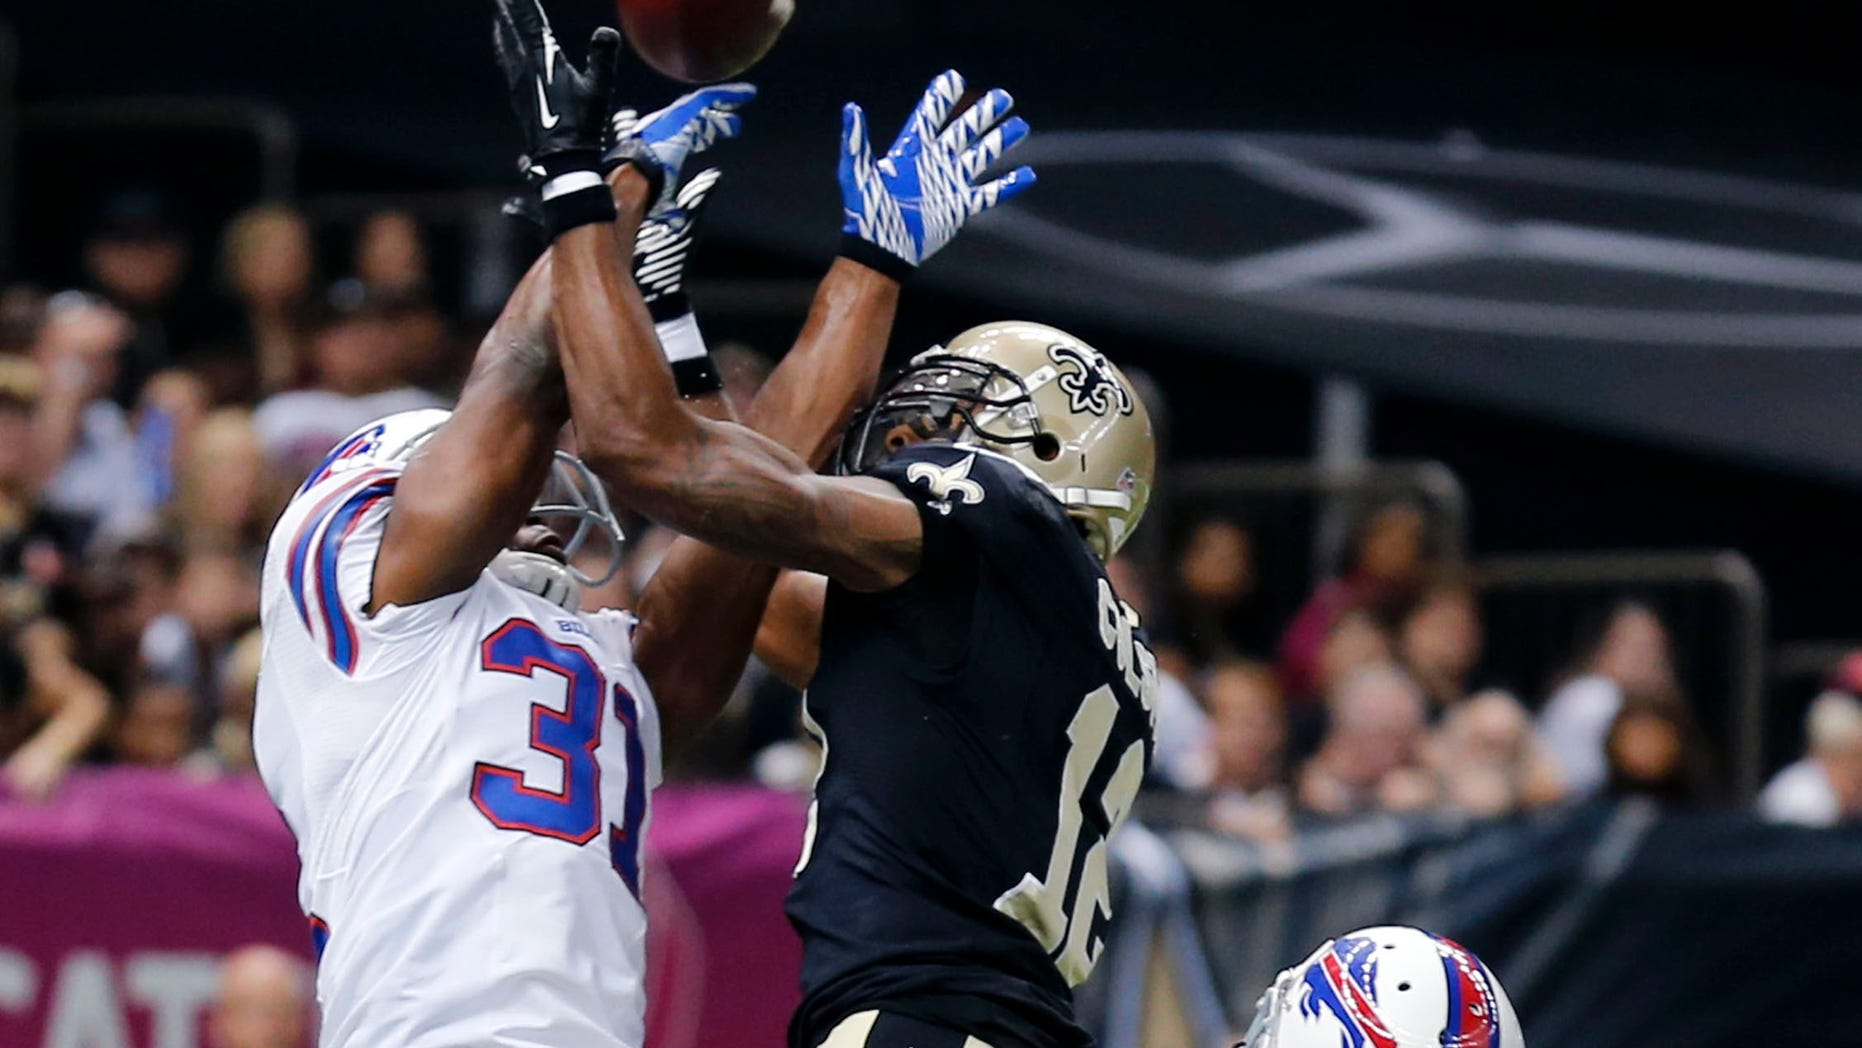 Buffalo Bills free safety Jairus Byrd (31) and defensive back Nickell Robey (37) break up a pass intended for New Orleans Saints wide receiver Marques Colston (12) during the first half of an NFL football game in New Orleans, Sunday, Oct. 27, 2013. (AP Photo/Bill Haber)